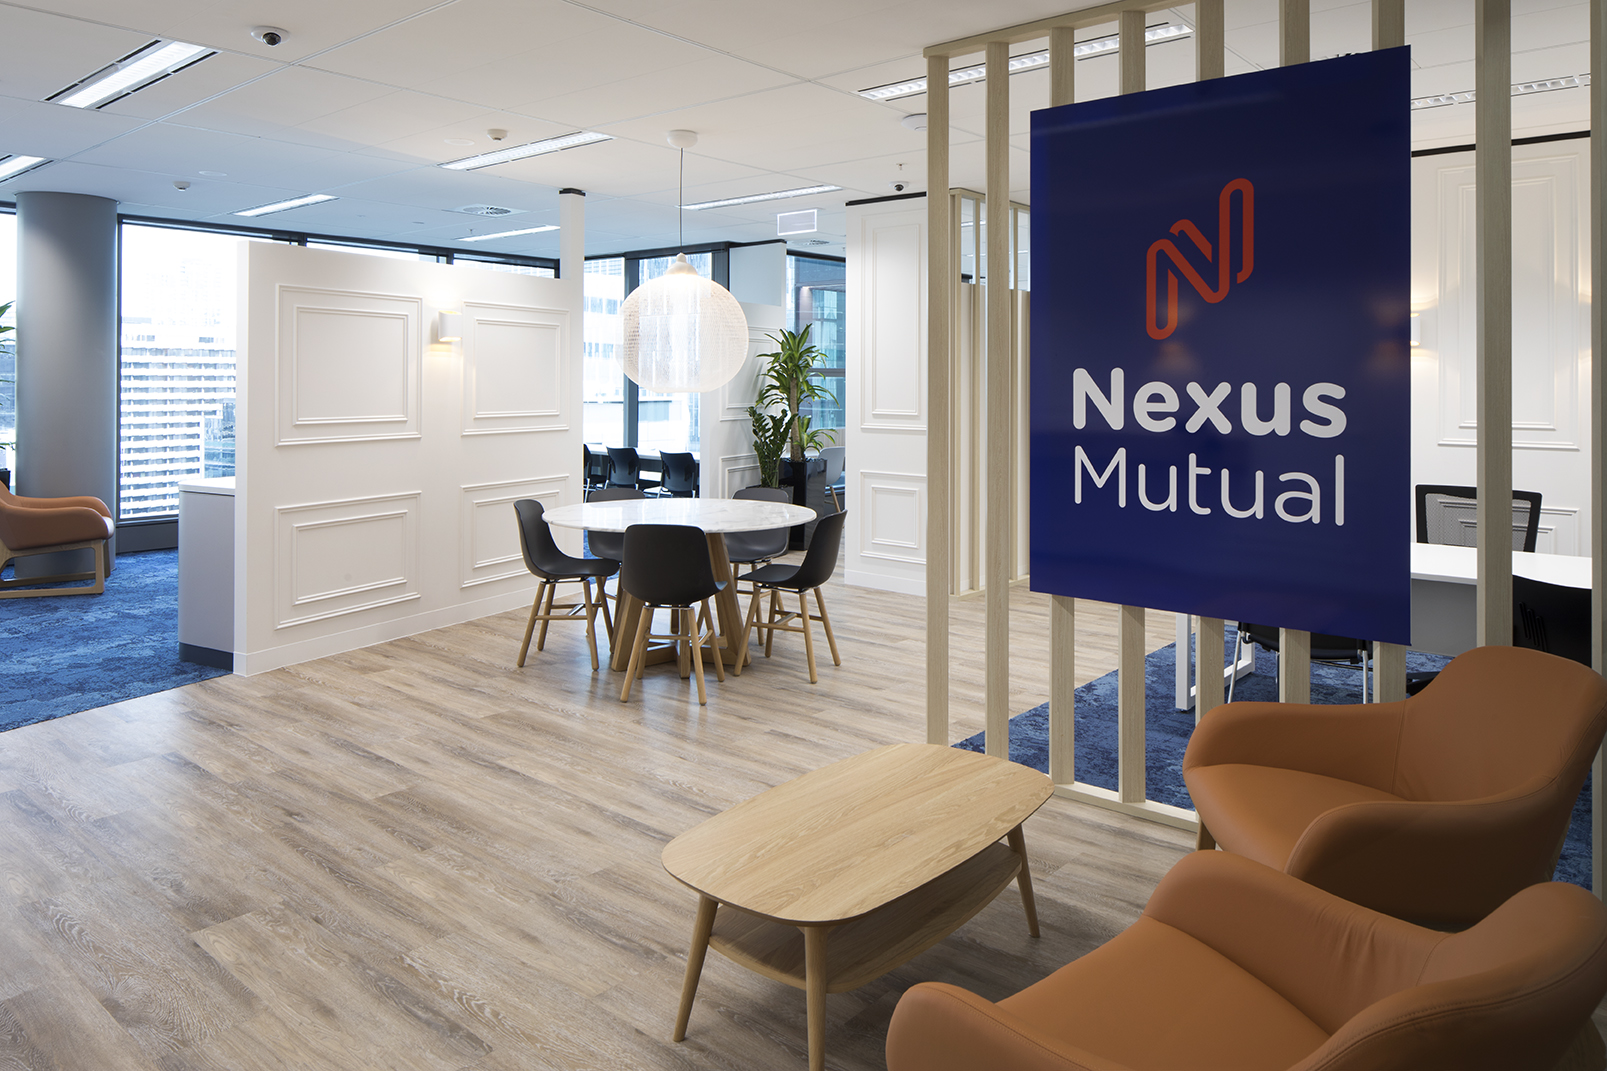 The Nexus Mutual Office fitout features wood panelling, lounge and breakout areas as well as a private members lounge.